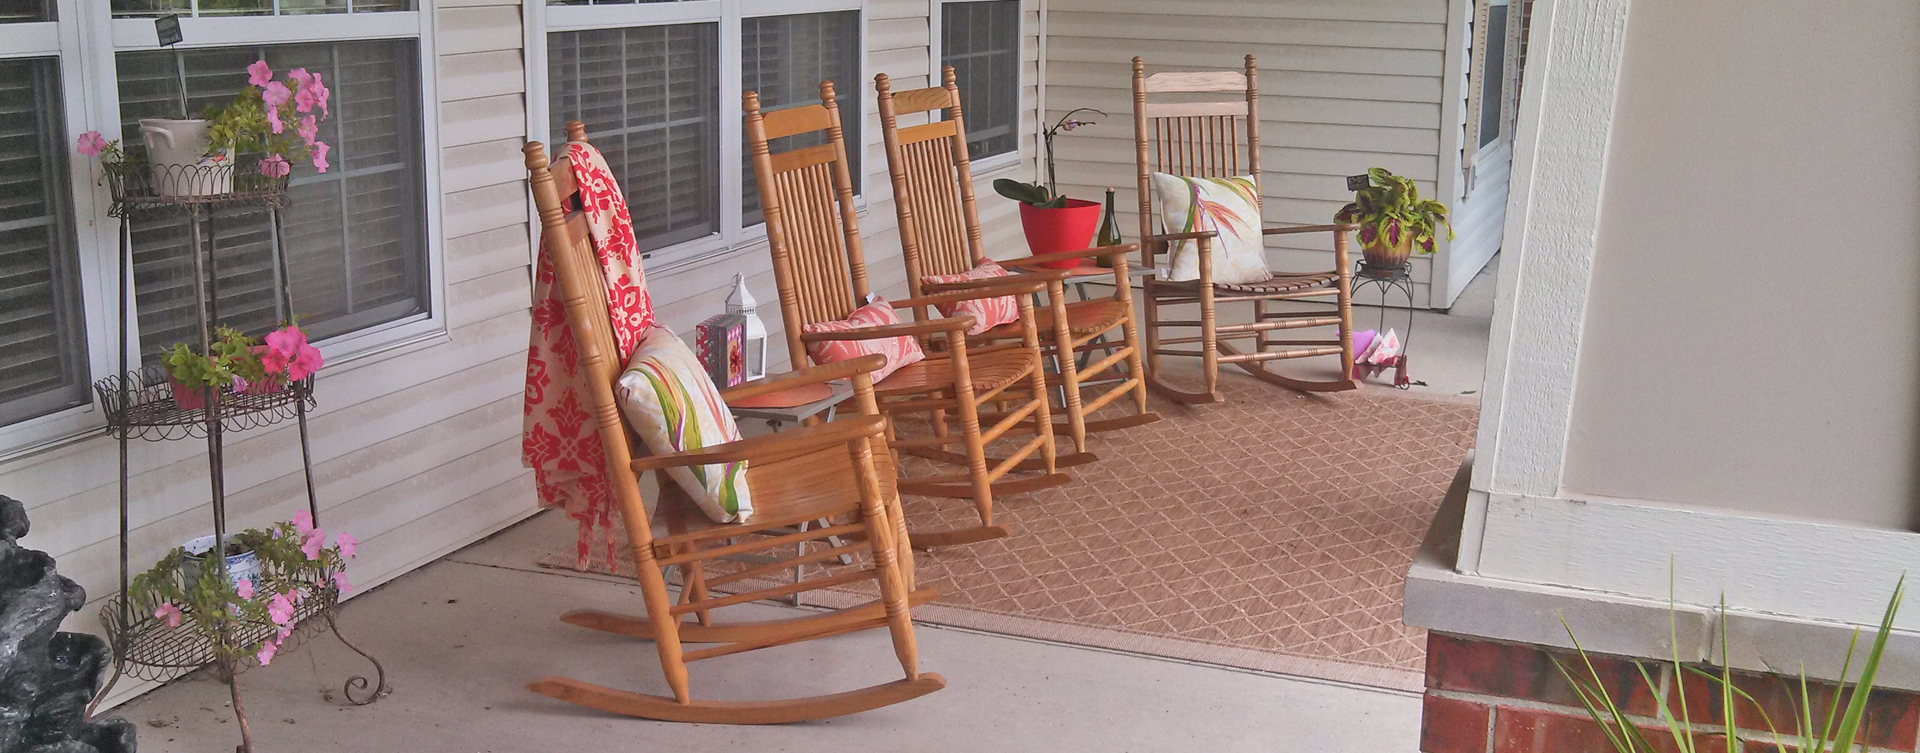 Relax in your favorite chair on the porch at Bickford of Fort Dodge